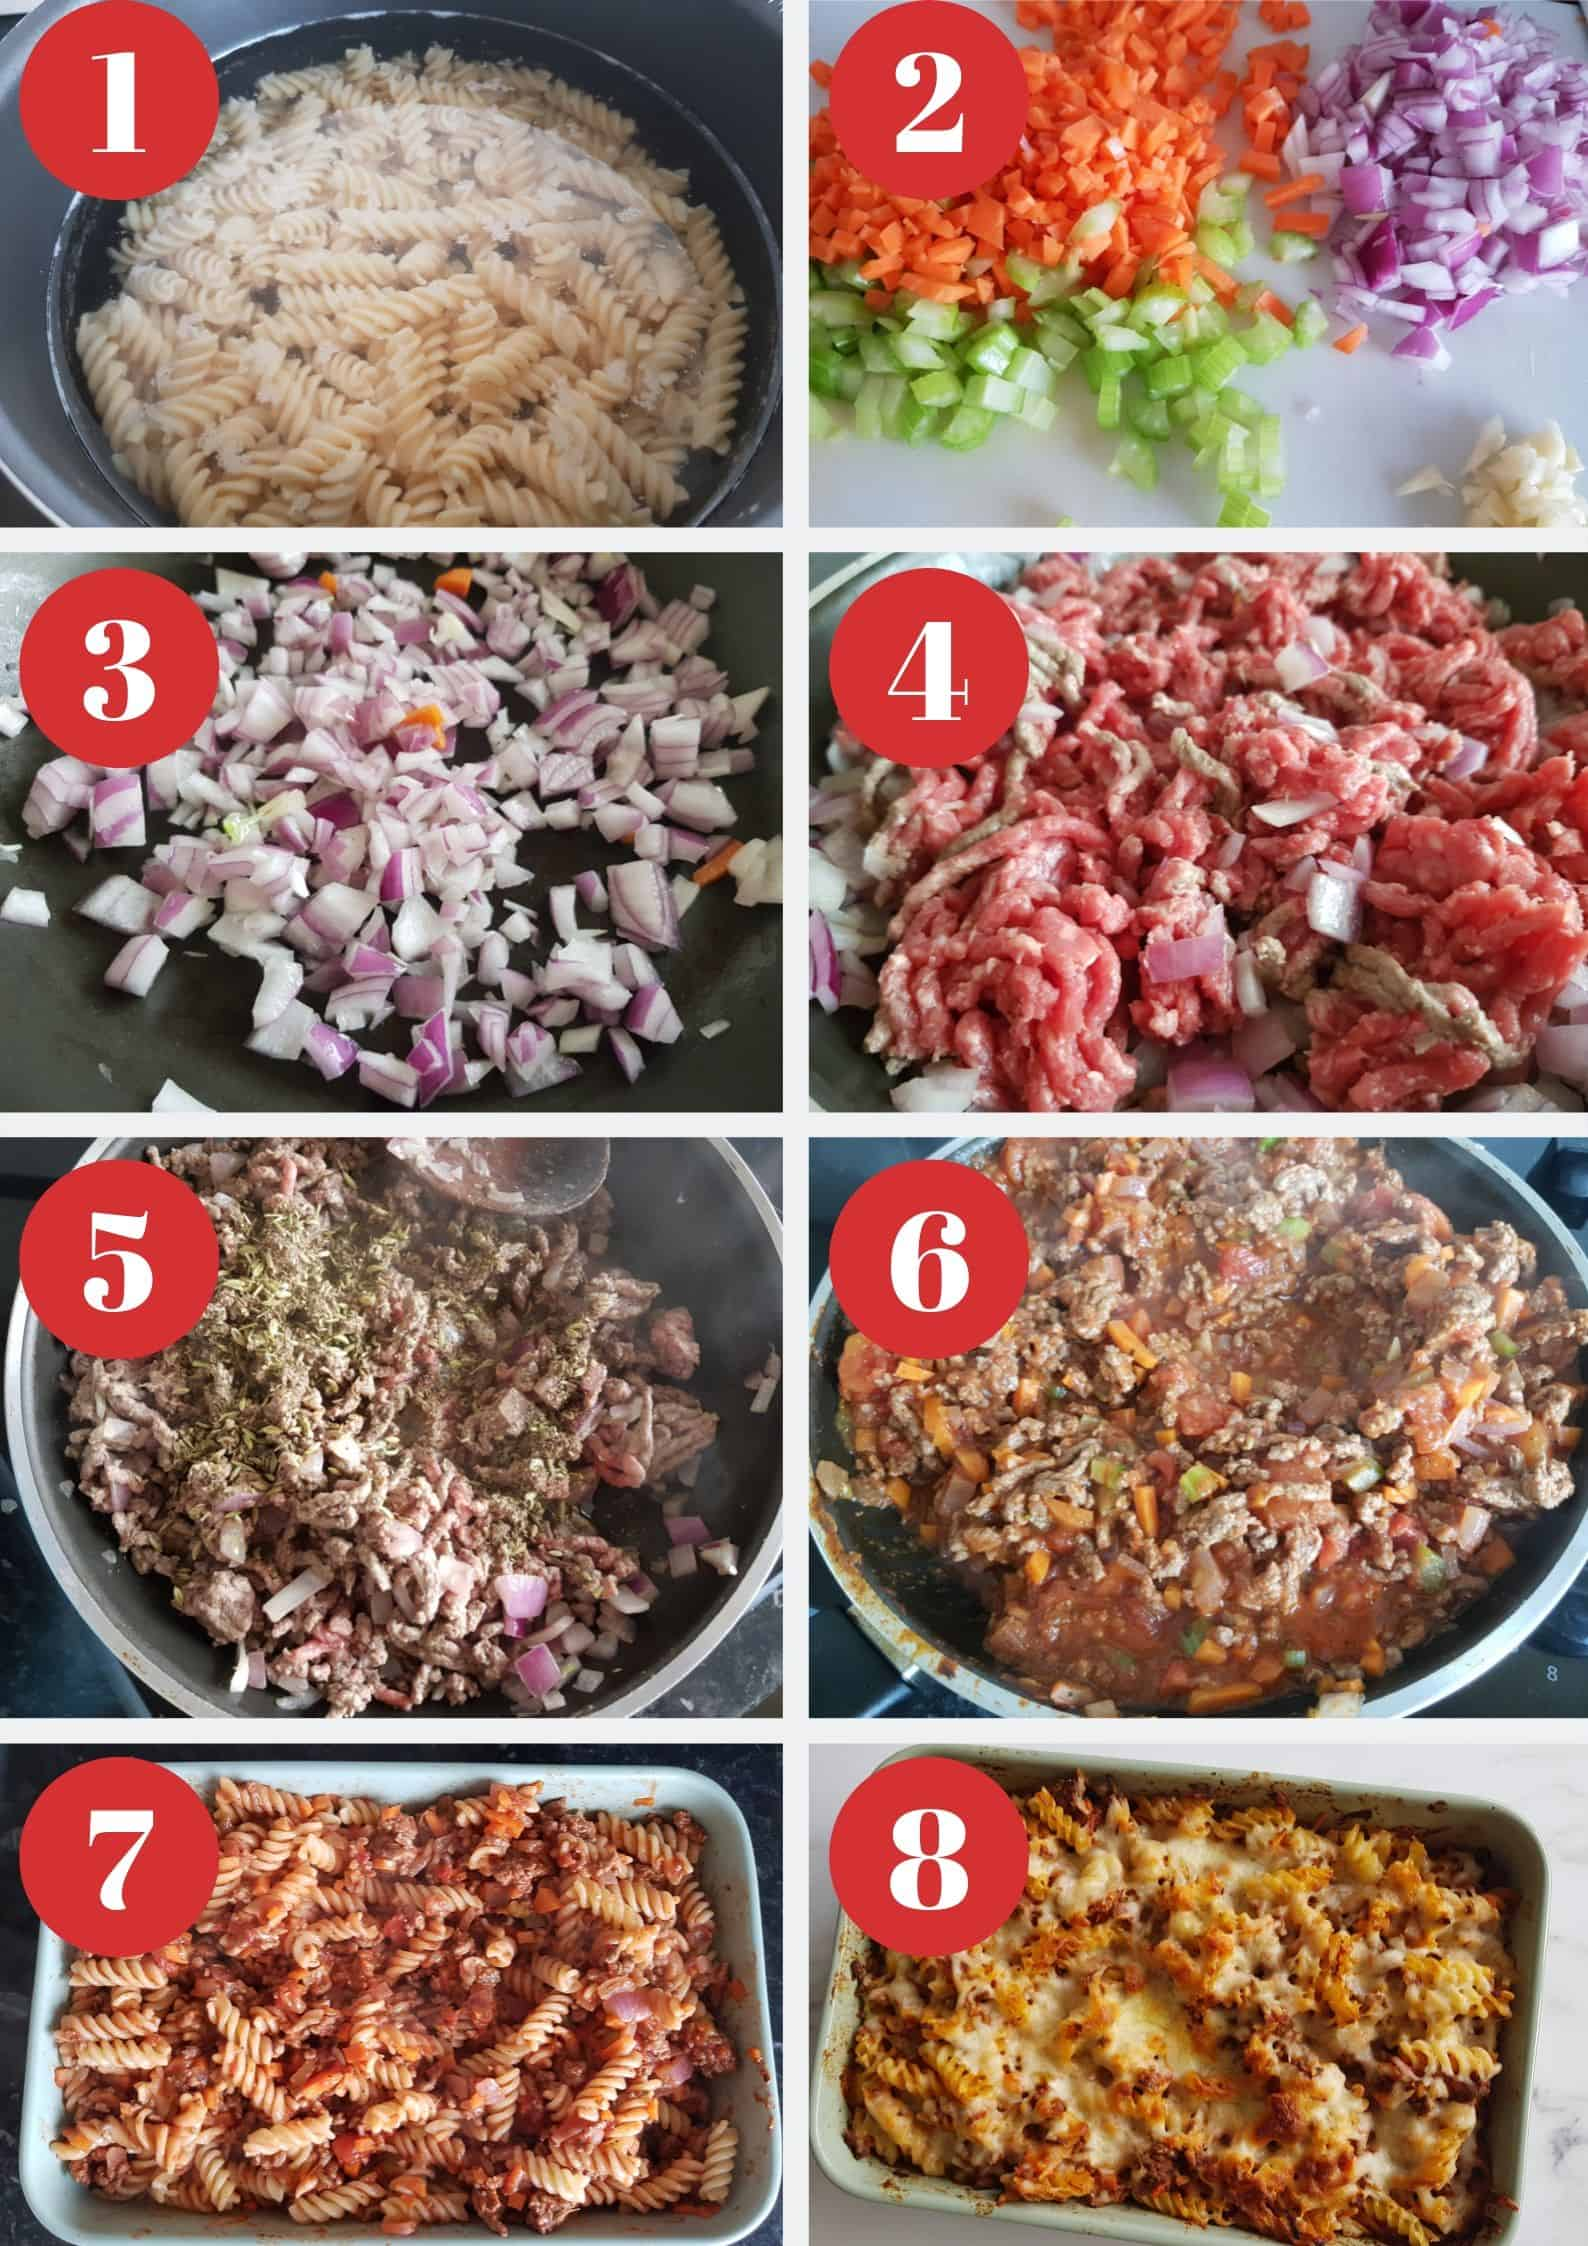 Infographic showing step by step how to make the pasta bake.